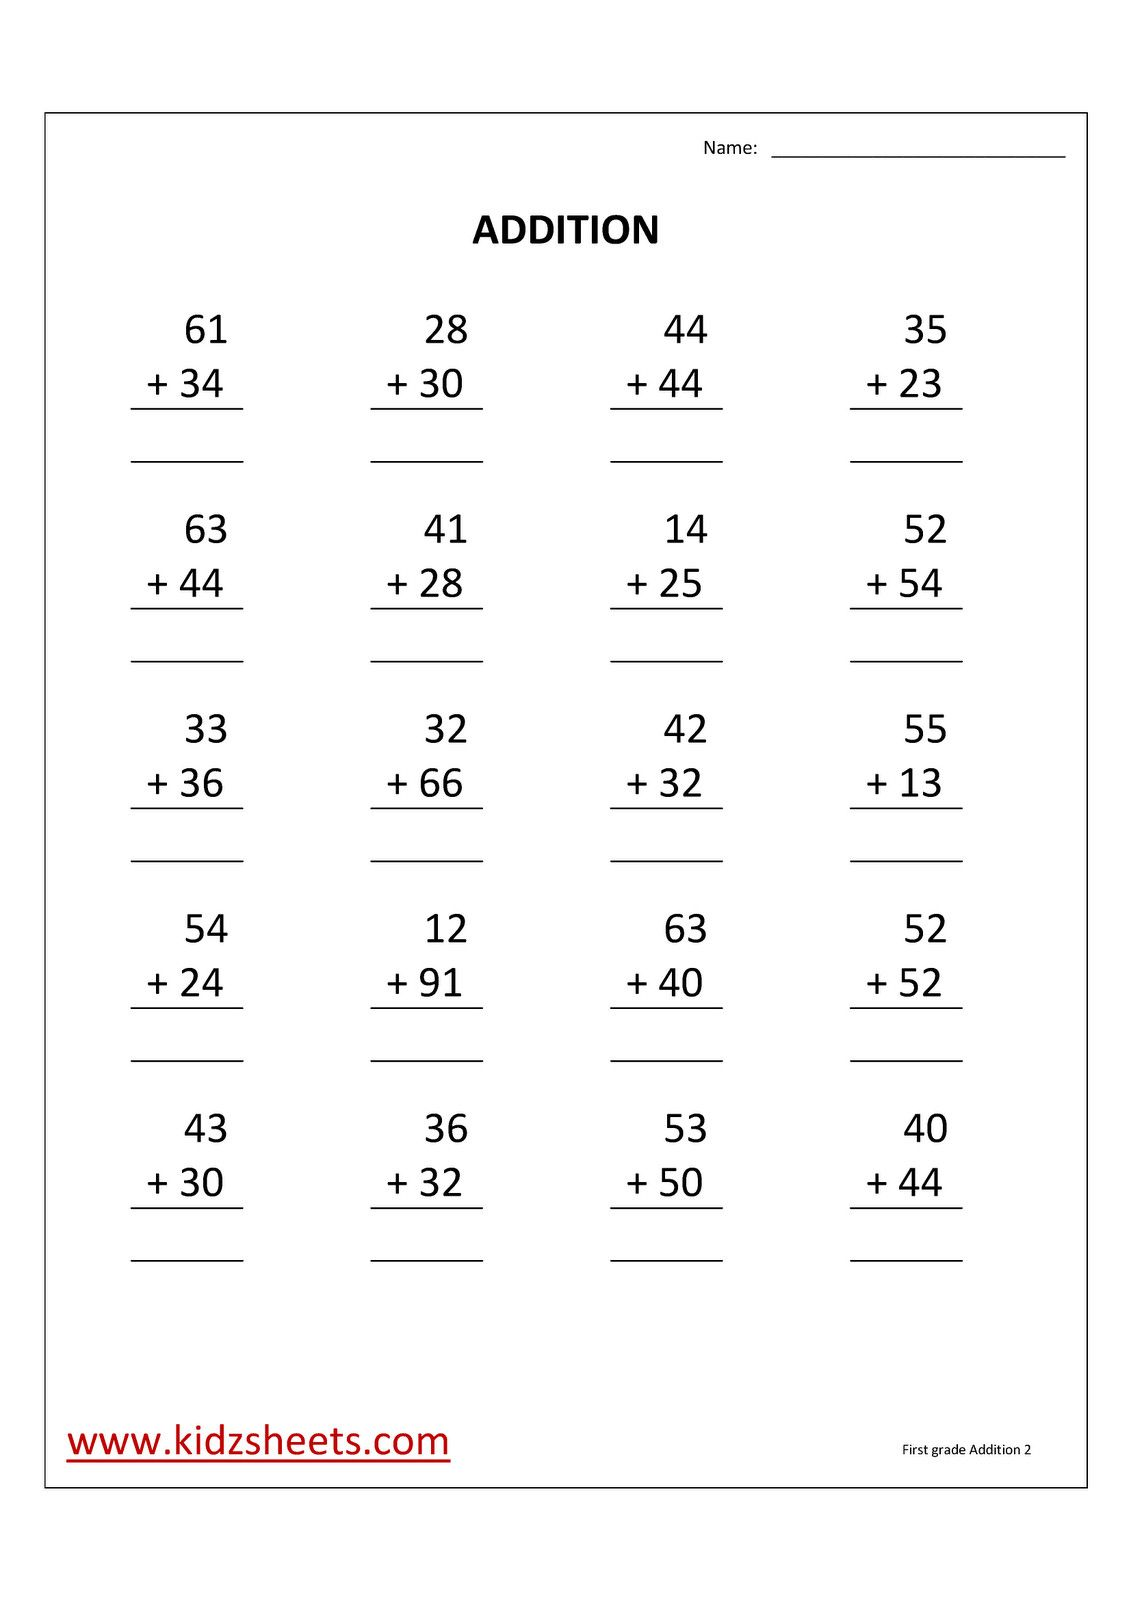 medium resolution of 7 Free Addition Worksheets for Math Practice   2nd grade math worksheets